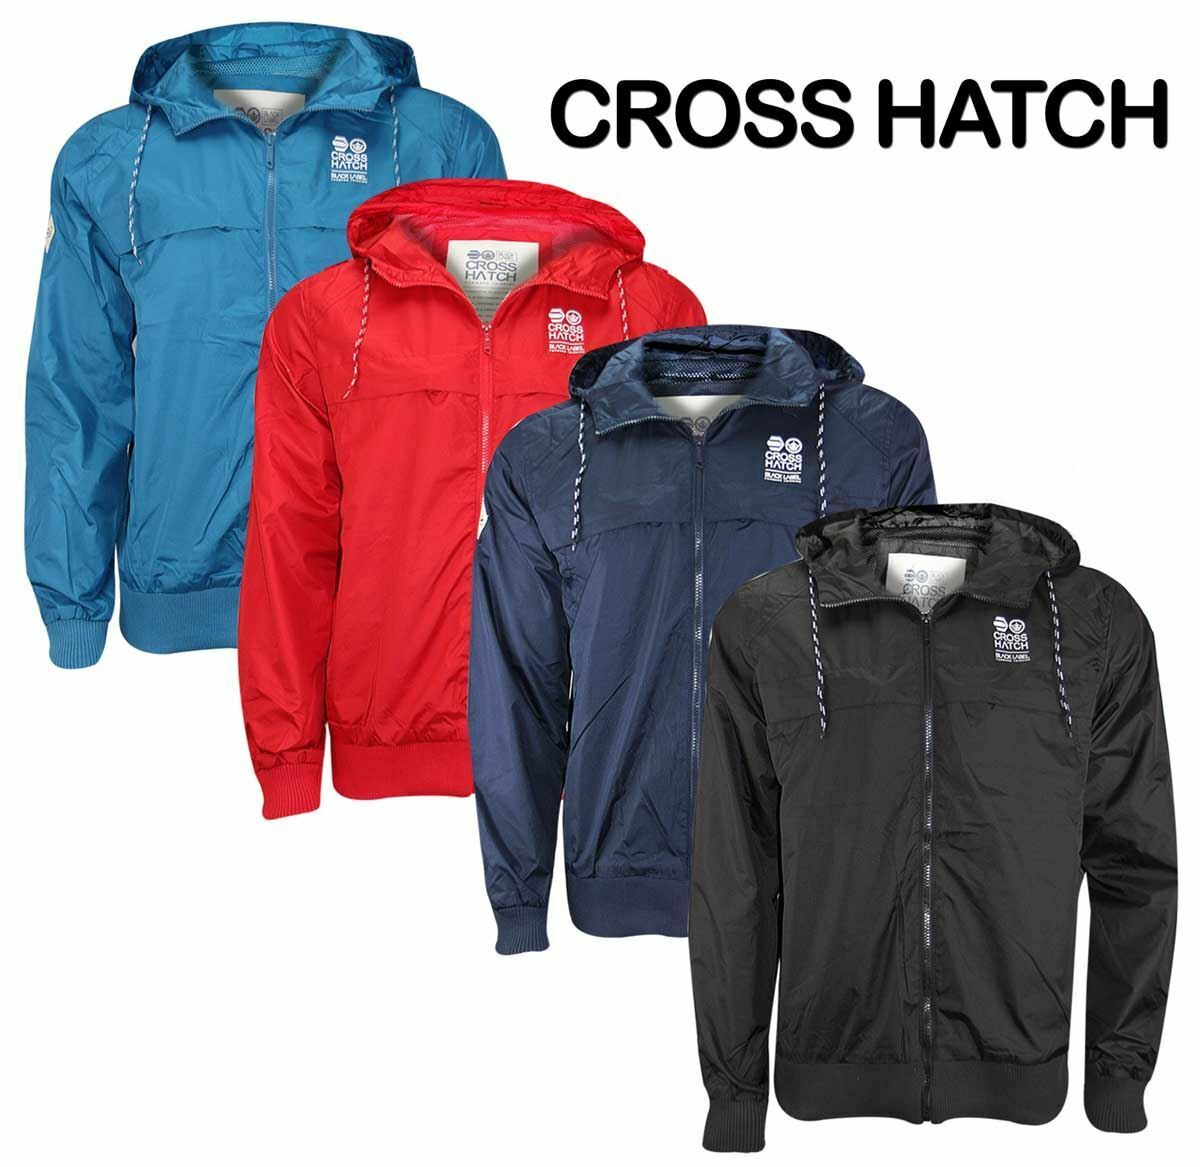 men Cross Hatch Di marca A vento Giacca Cappotto con cappuccio Impermeabile